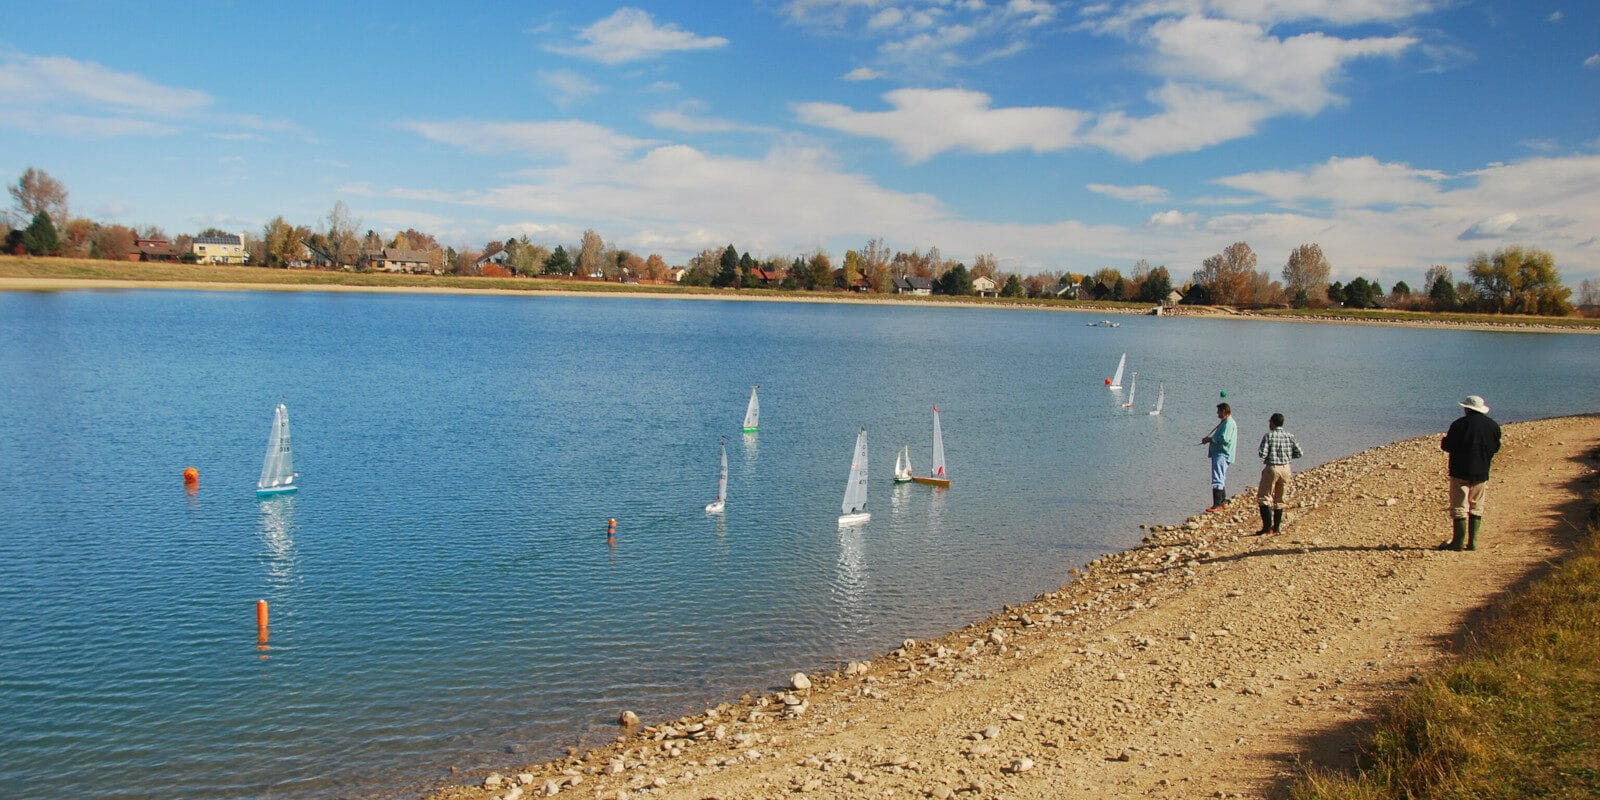 Image of the Harper Lake in Louisville, Colorado